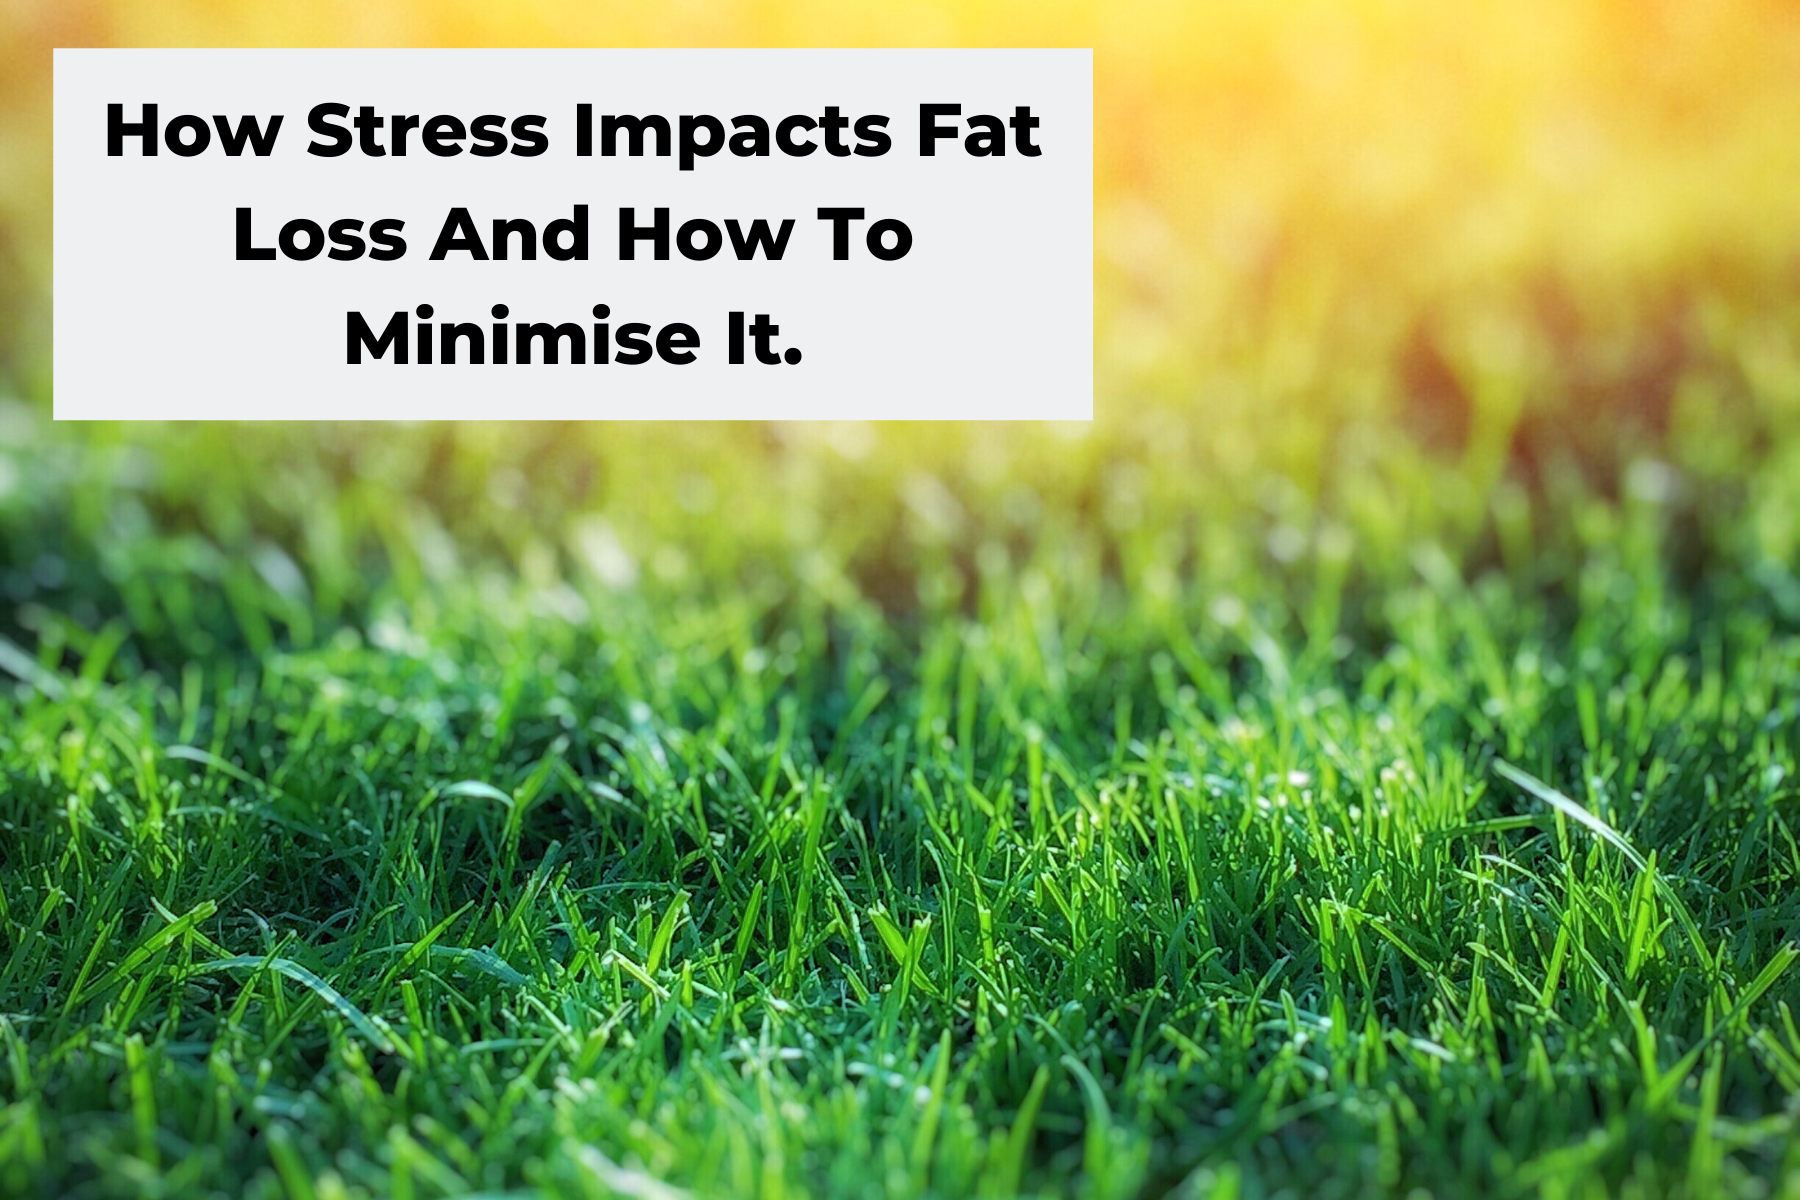 How Stress Impacts Fat Loss